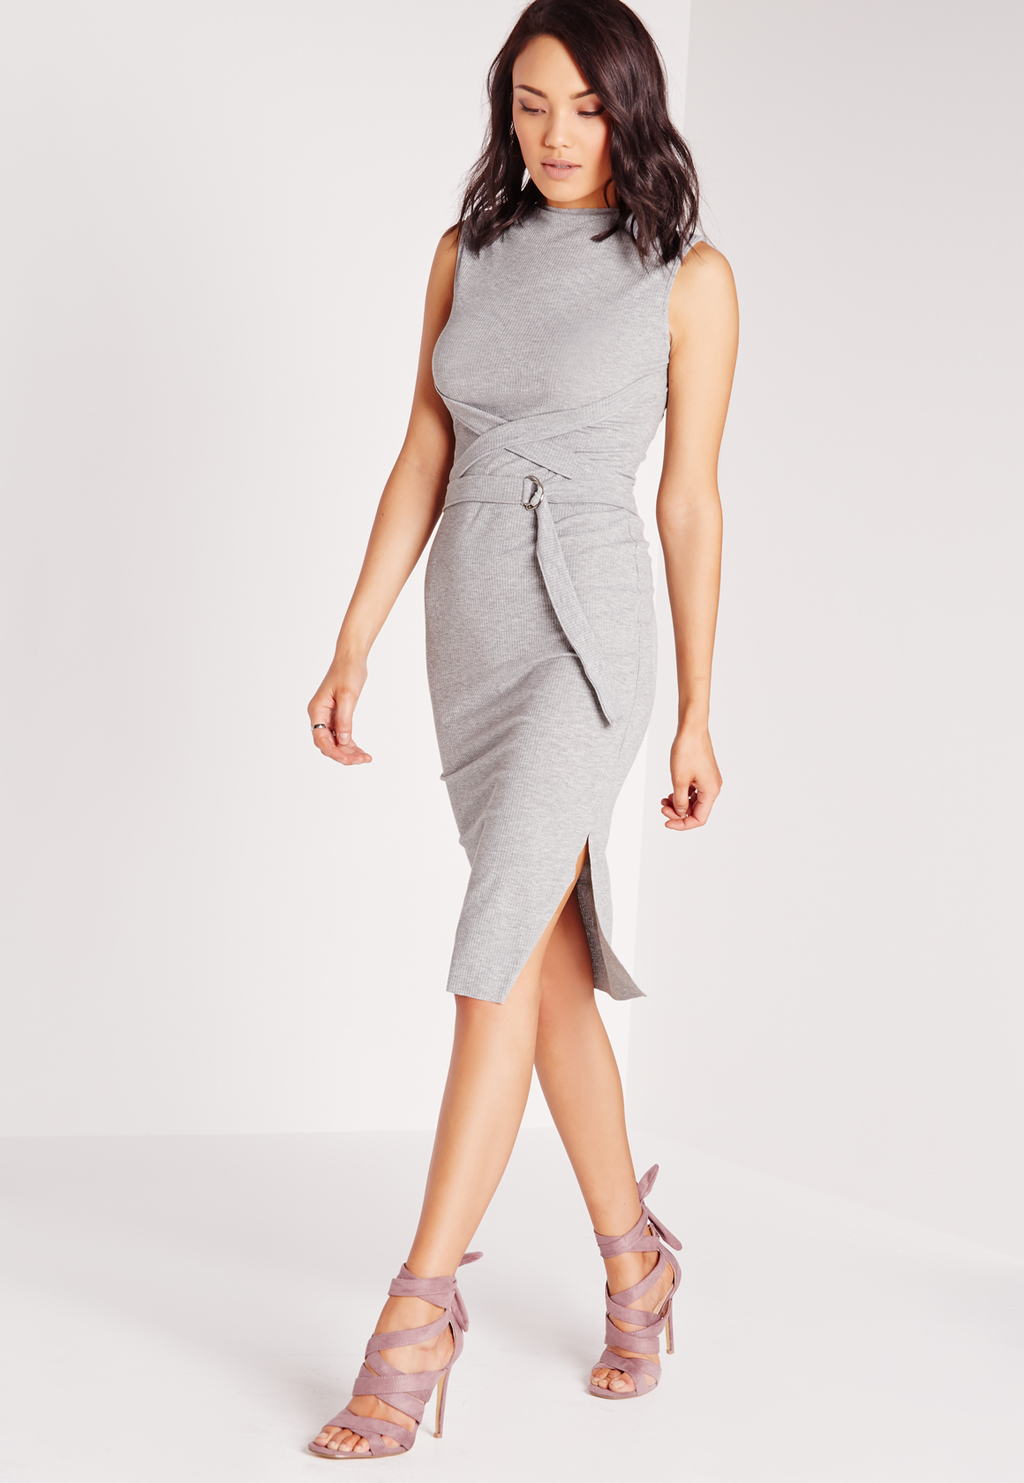 Sleeveless High Neck Wrap Belt Bodycon Dress Grey, Grey - fit: tight; pattern: plain; sleeve style: sleeveless; neckline: high neck; style: bodycon; waist detail: belted waist/tie at waist/drawstring; predominant colour: light grey; occasions: evening; length: on the knee; fibres: polyester/polyamide - stretch; sleeve length: sleeveless; texture group: jersey - clingy; pattern type: fabric; season: s/s 2016; wardrobe: event